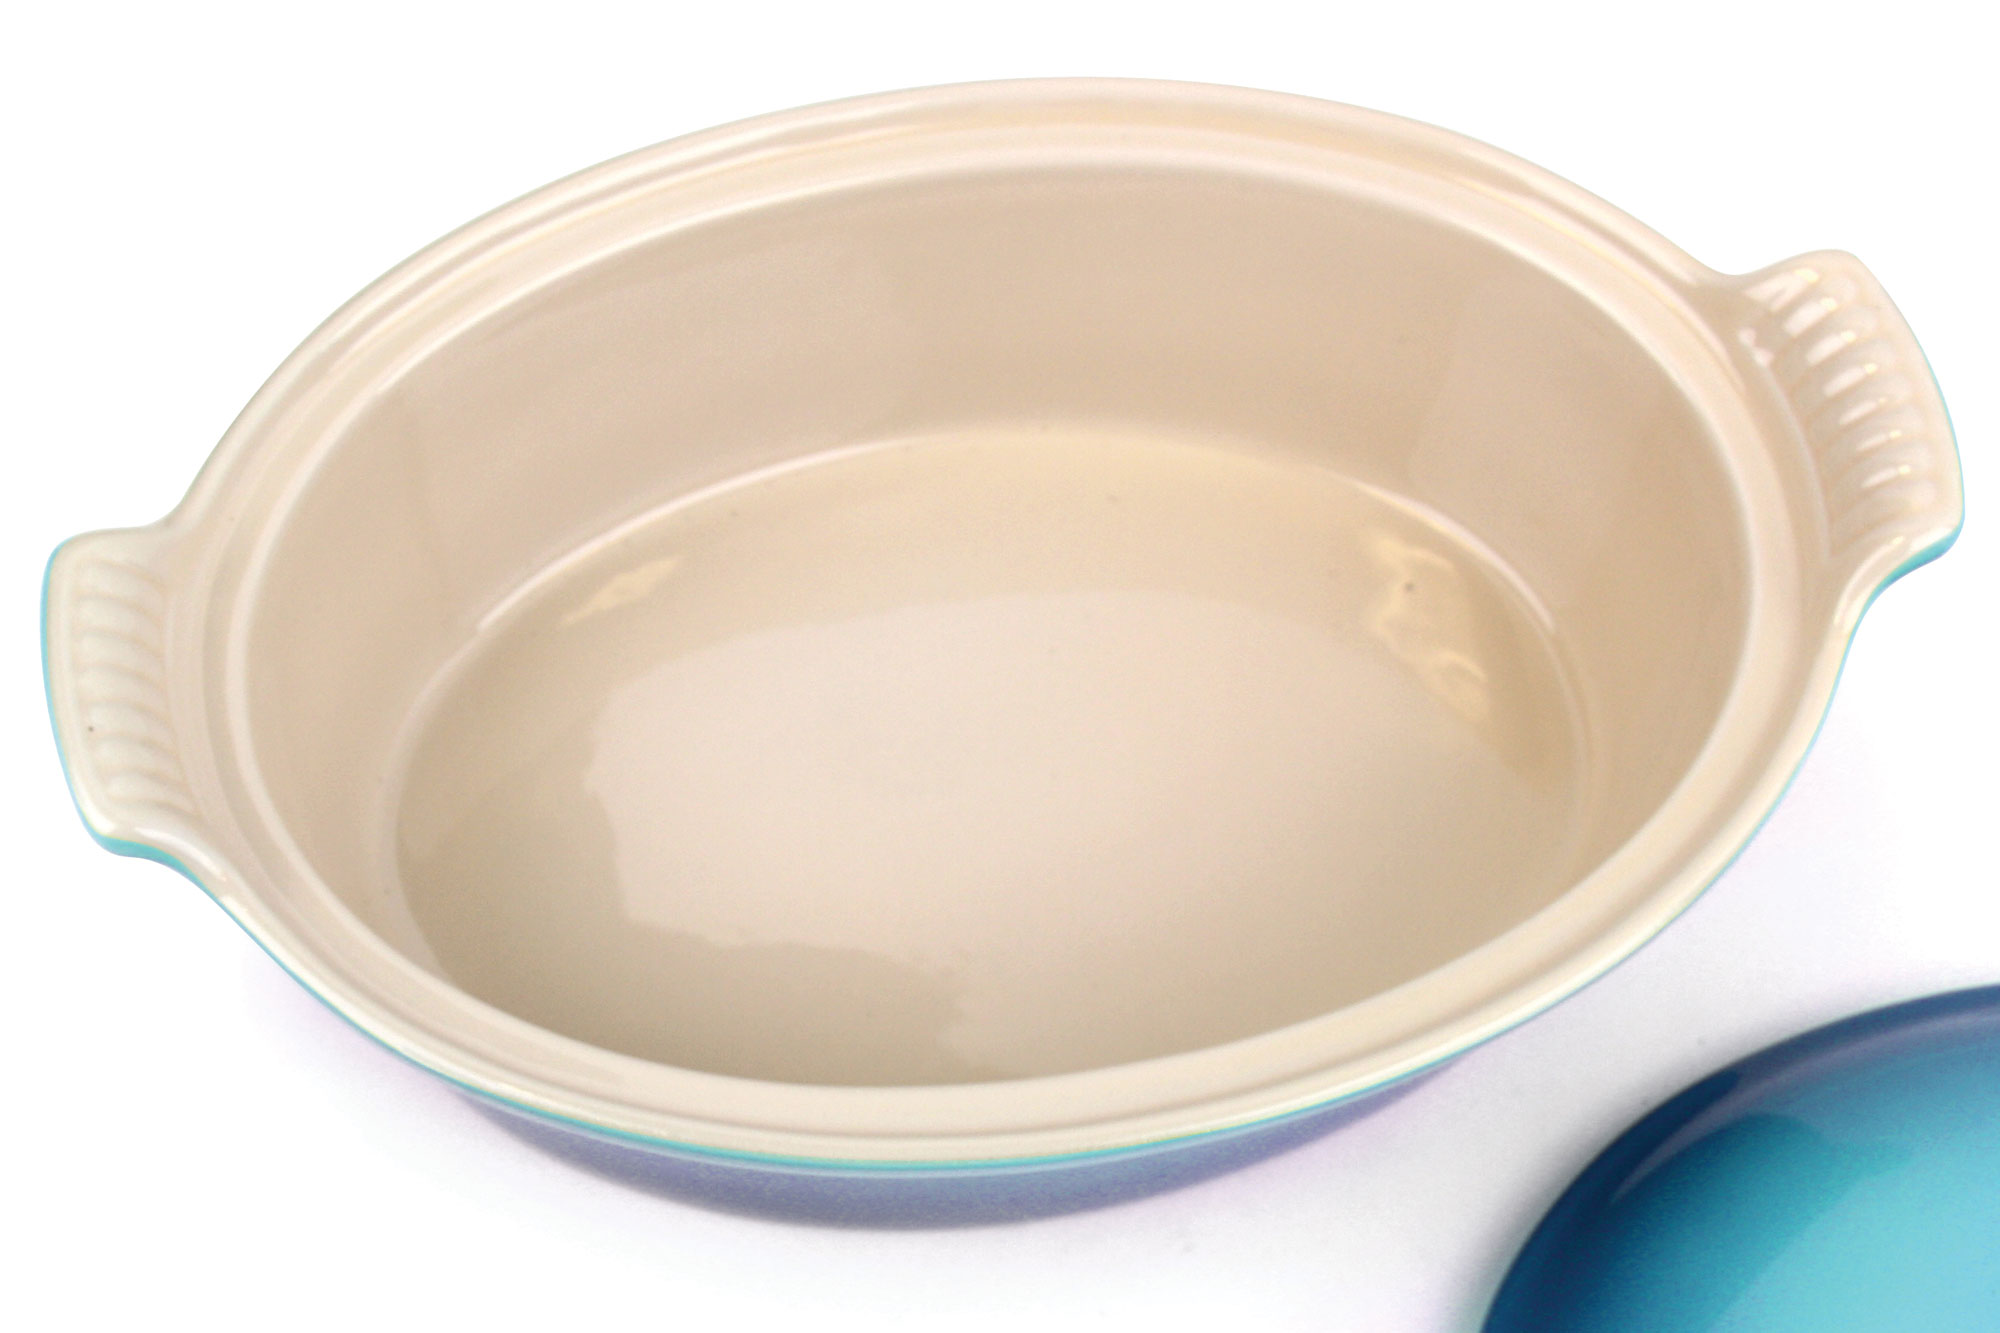 Le Creuset Stoneware Heritage Covered Oval Casserole 2 5